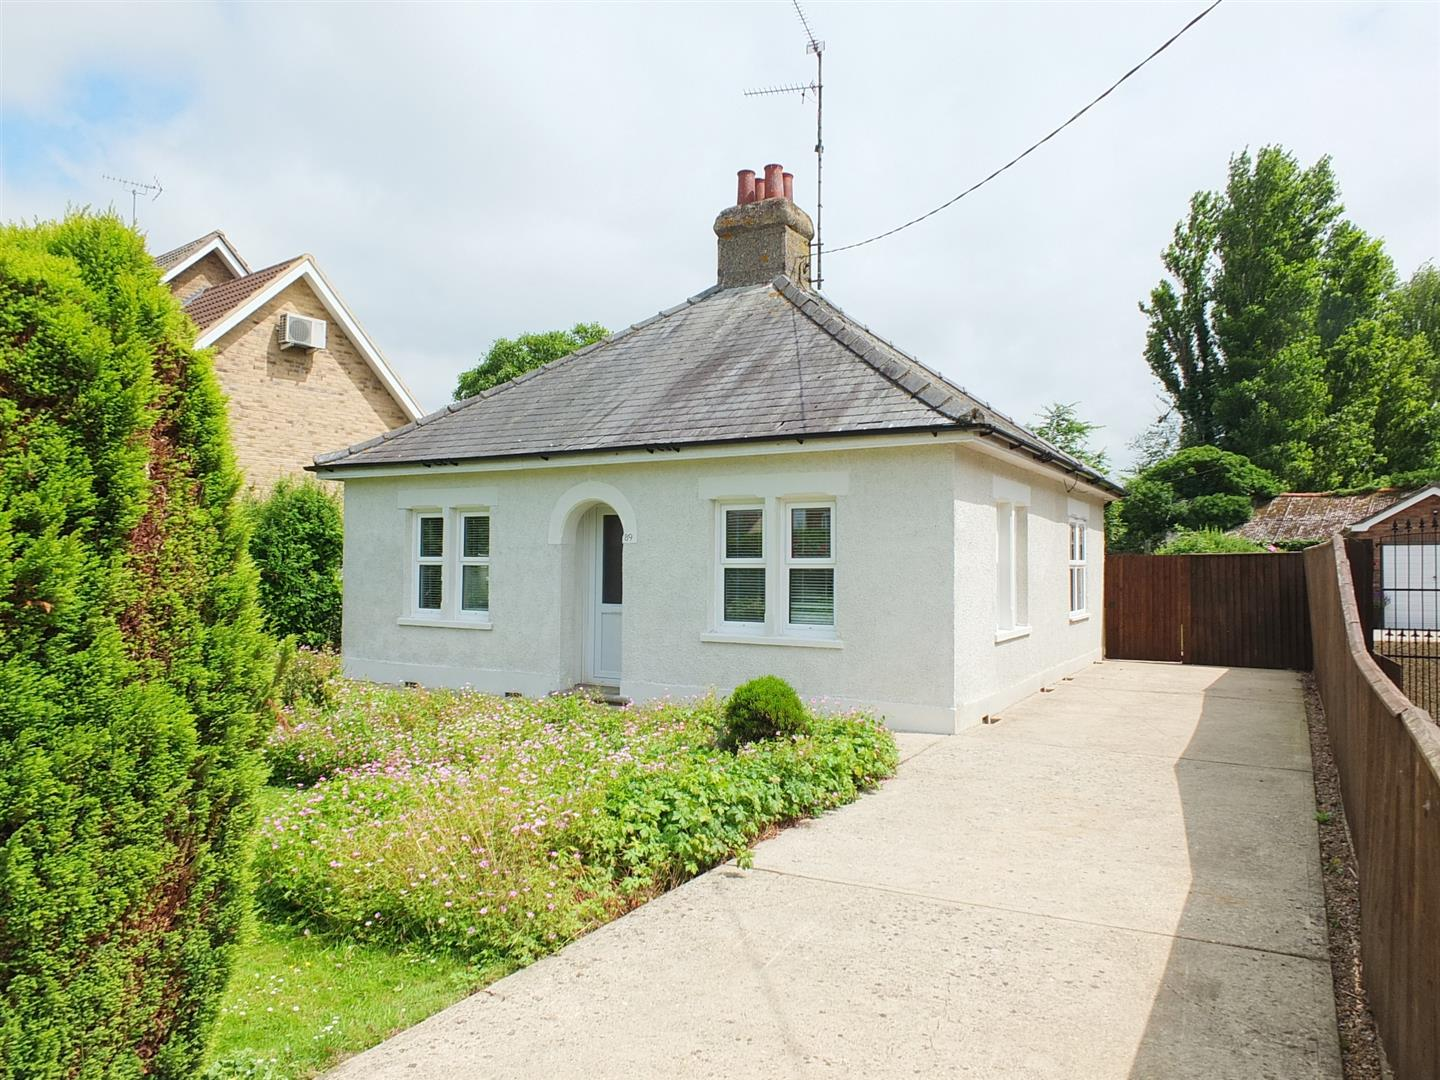 3 bed detached bungalow for sale in Seagate Road, Long Sutton Spalding, PE12